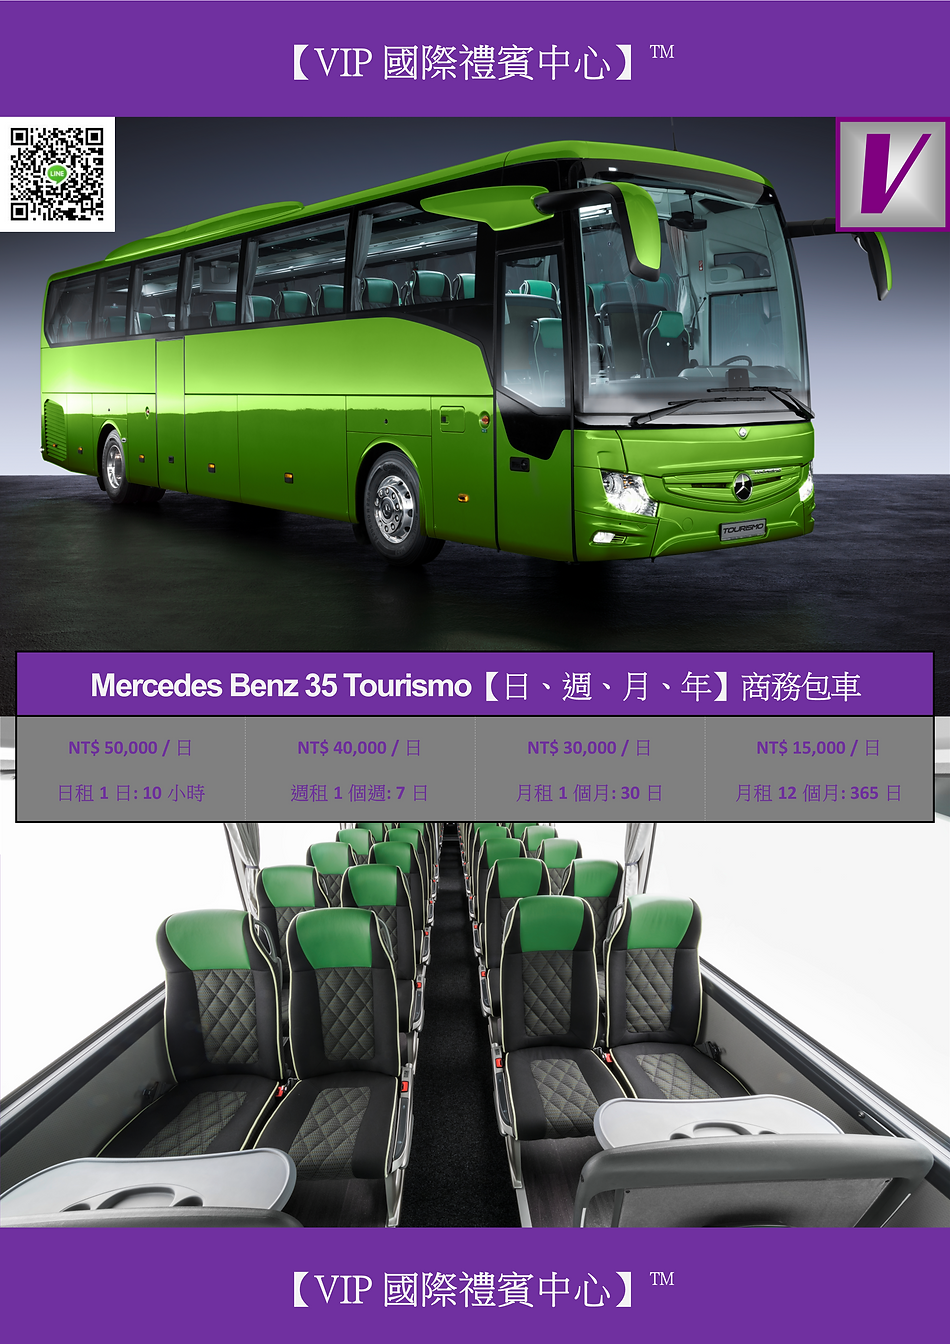 VIP國際禮賓中心 MERCEDES BENZ 35 TOURISMO DM.p